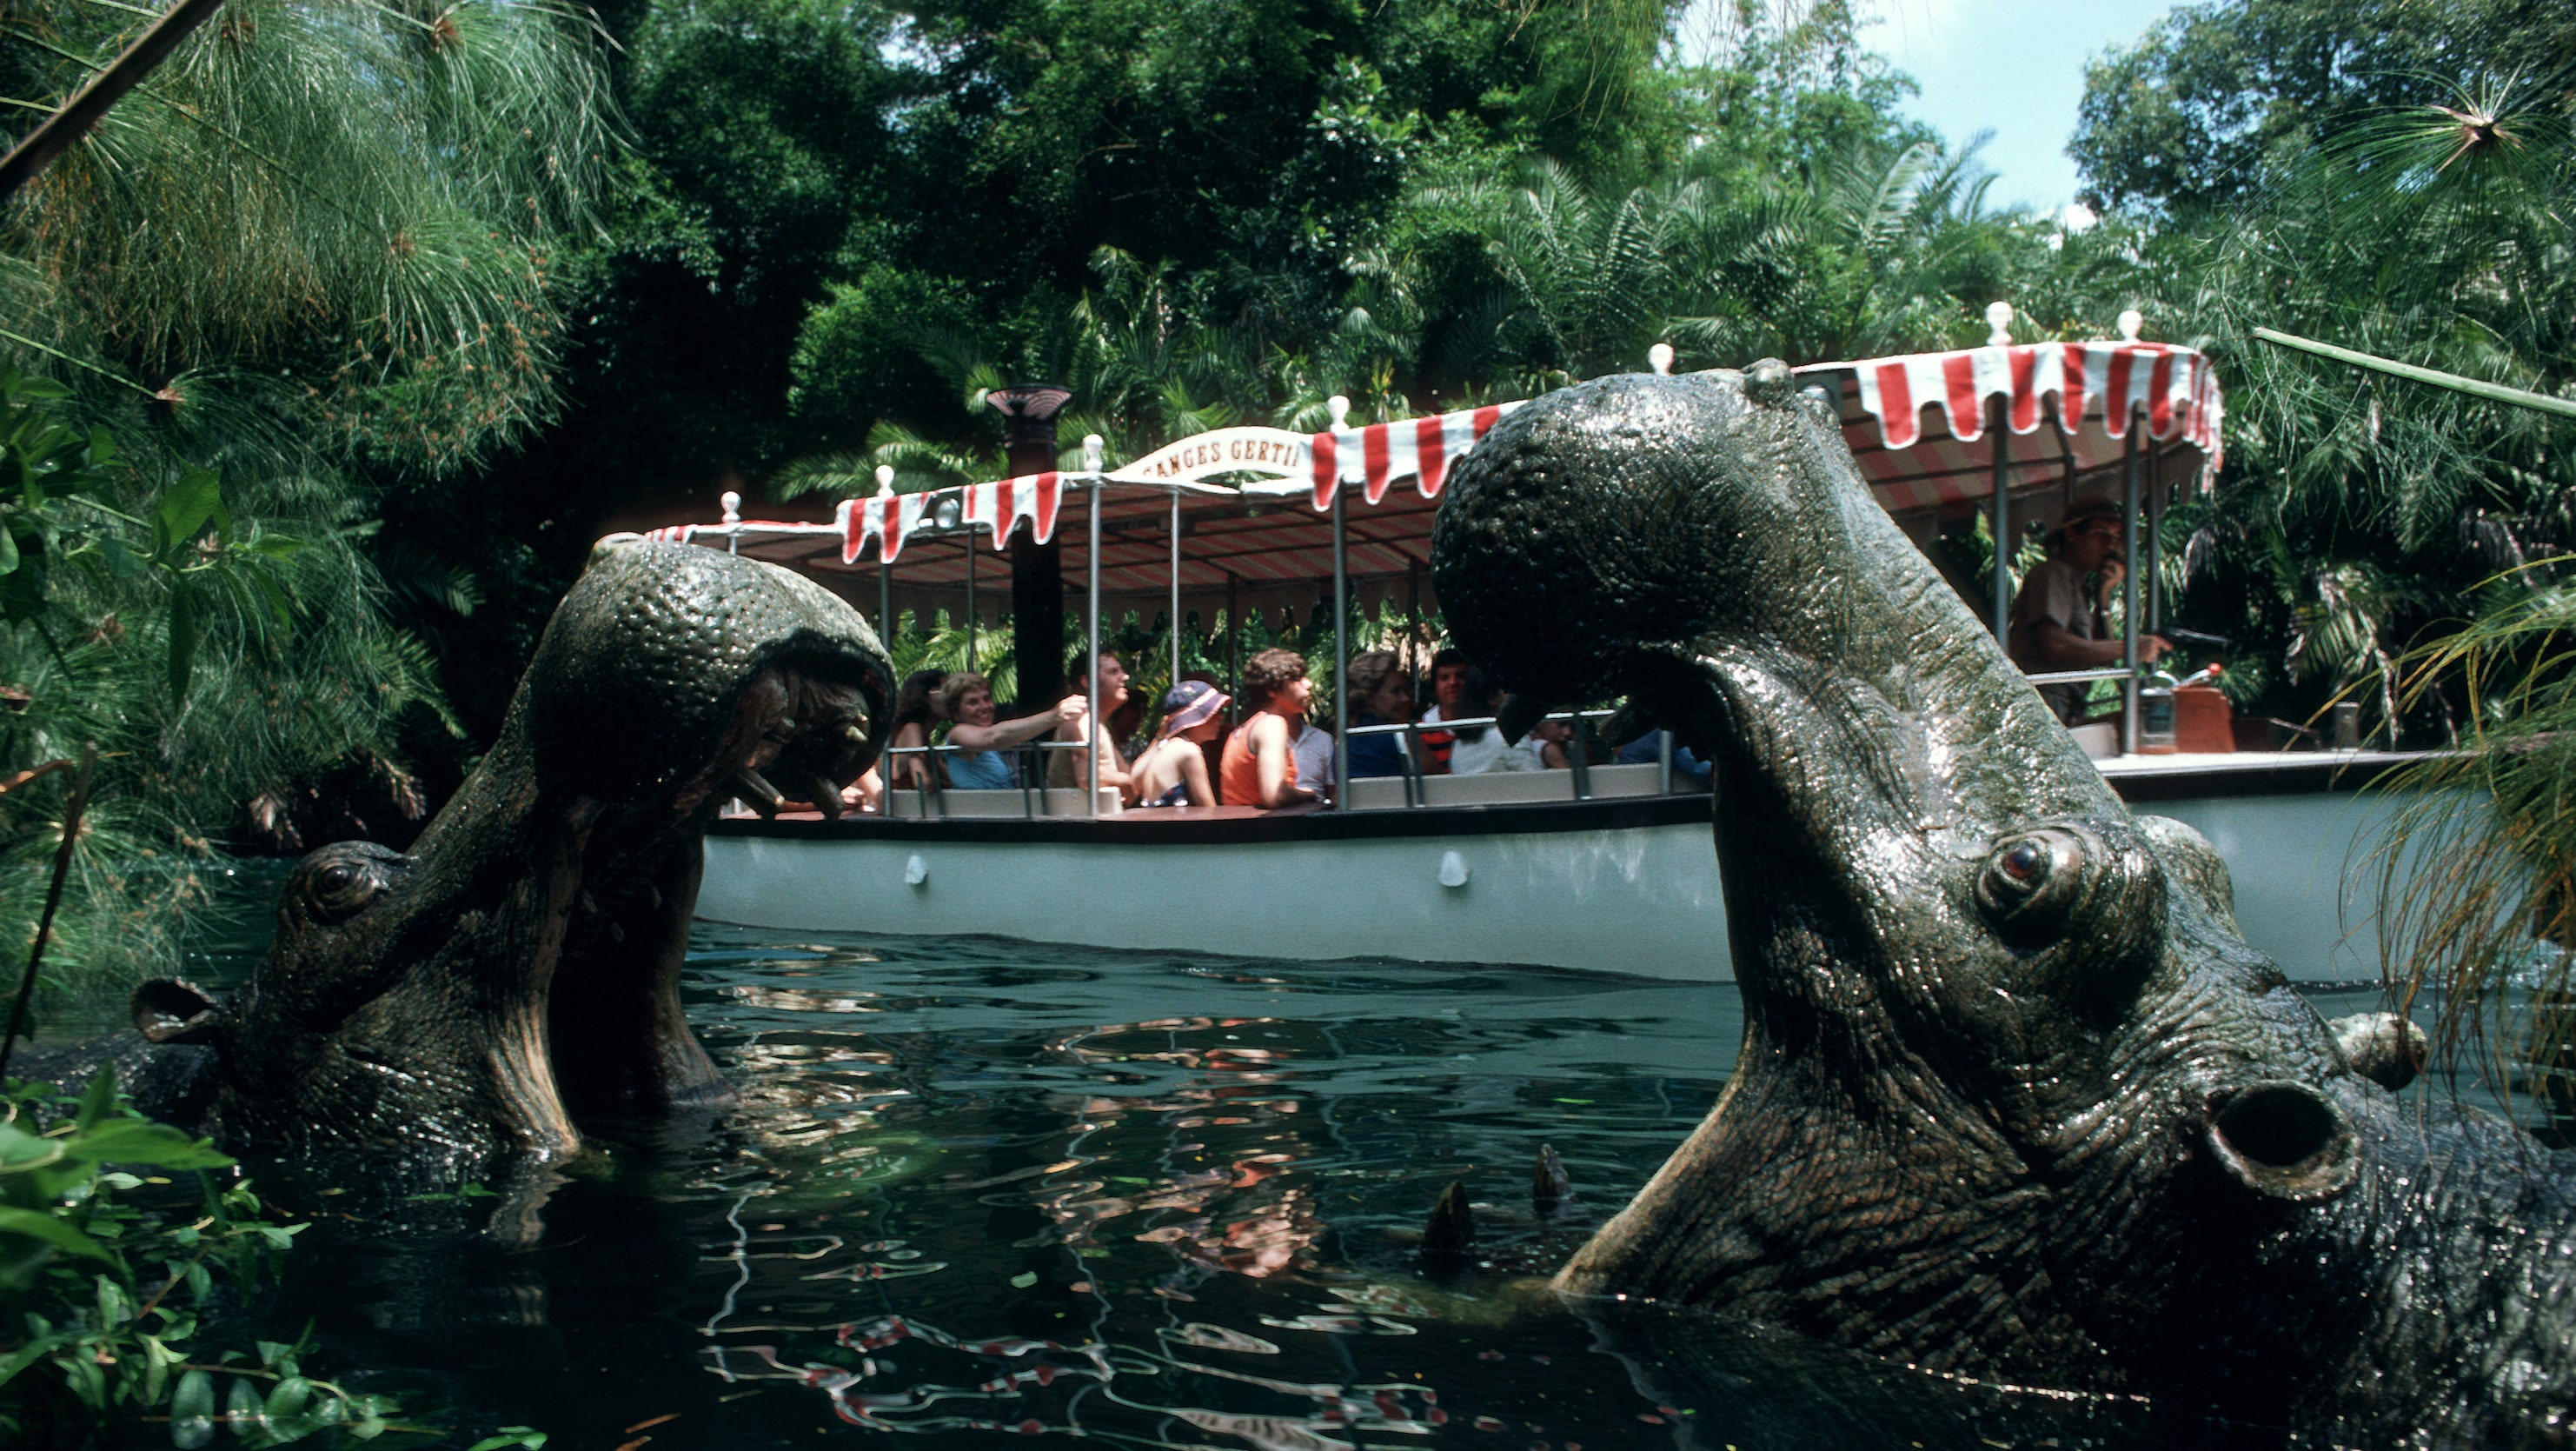 Image of two hippos and a boat from the Jungle Cruise ride.